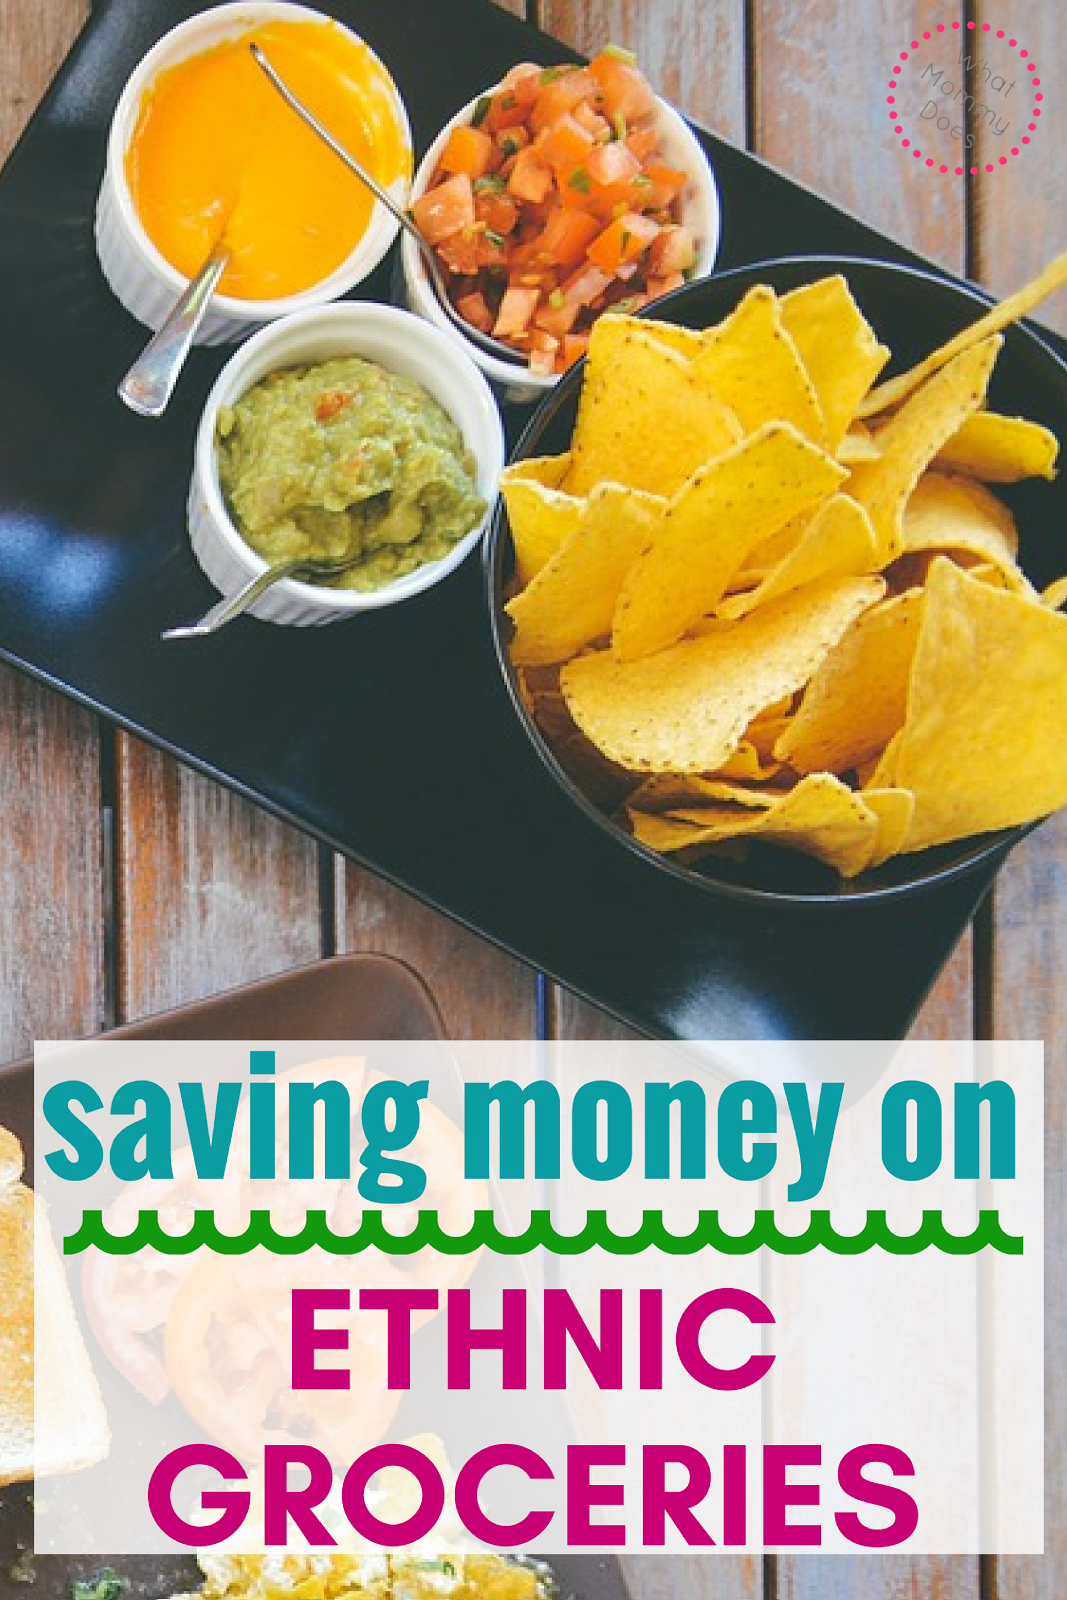 Saving Money on Ethnic Groceries - Learn how you can save money on grocery shopping for ethnic foods!